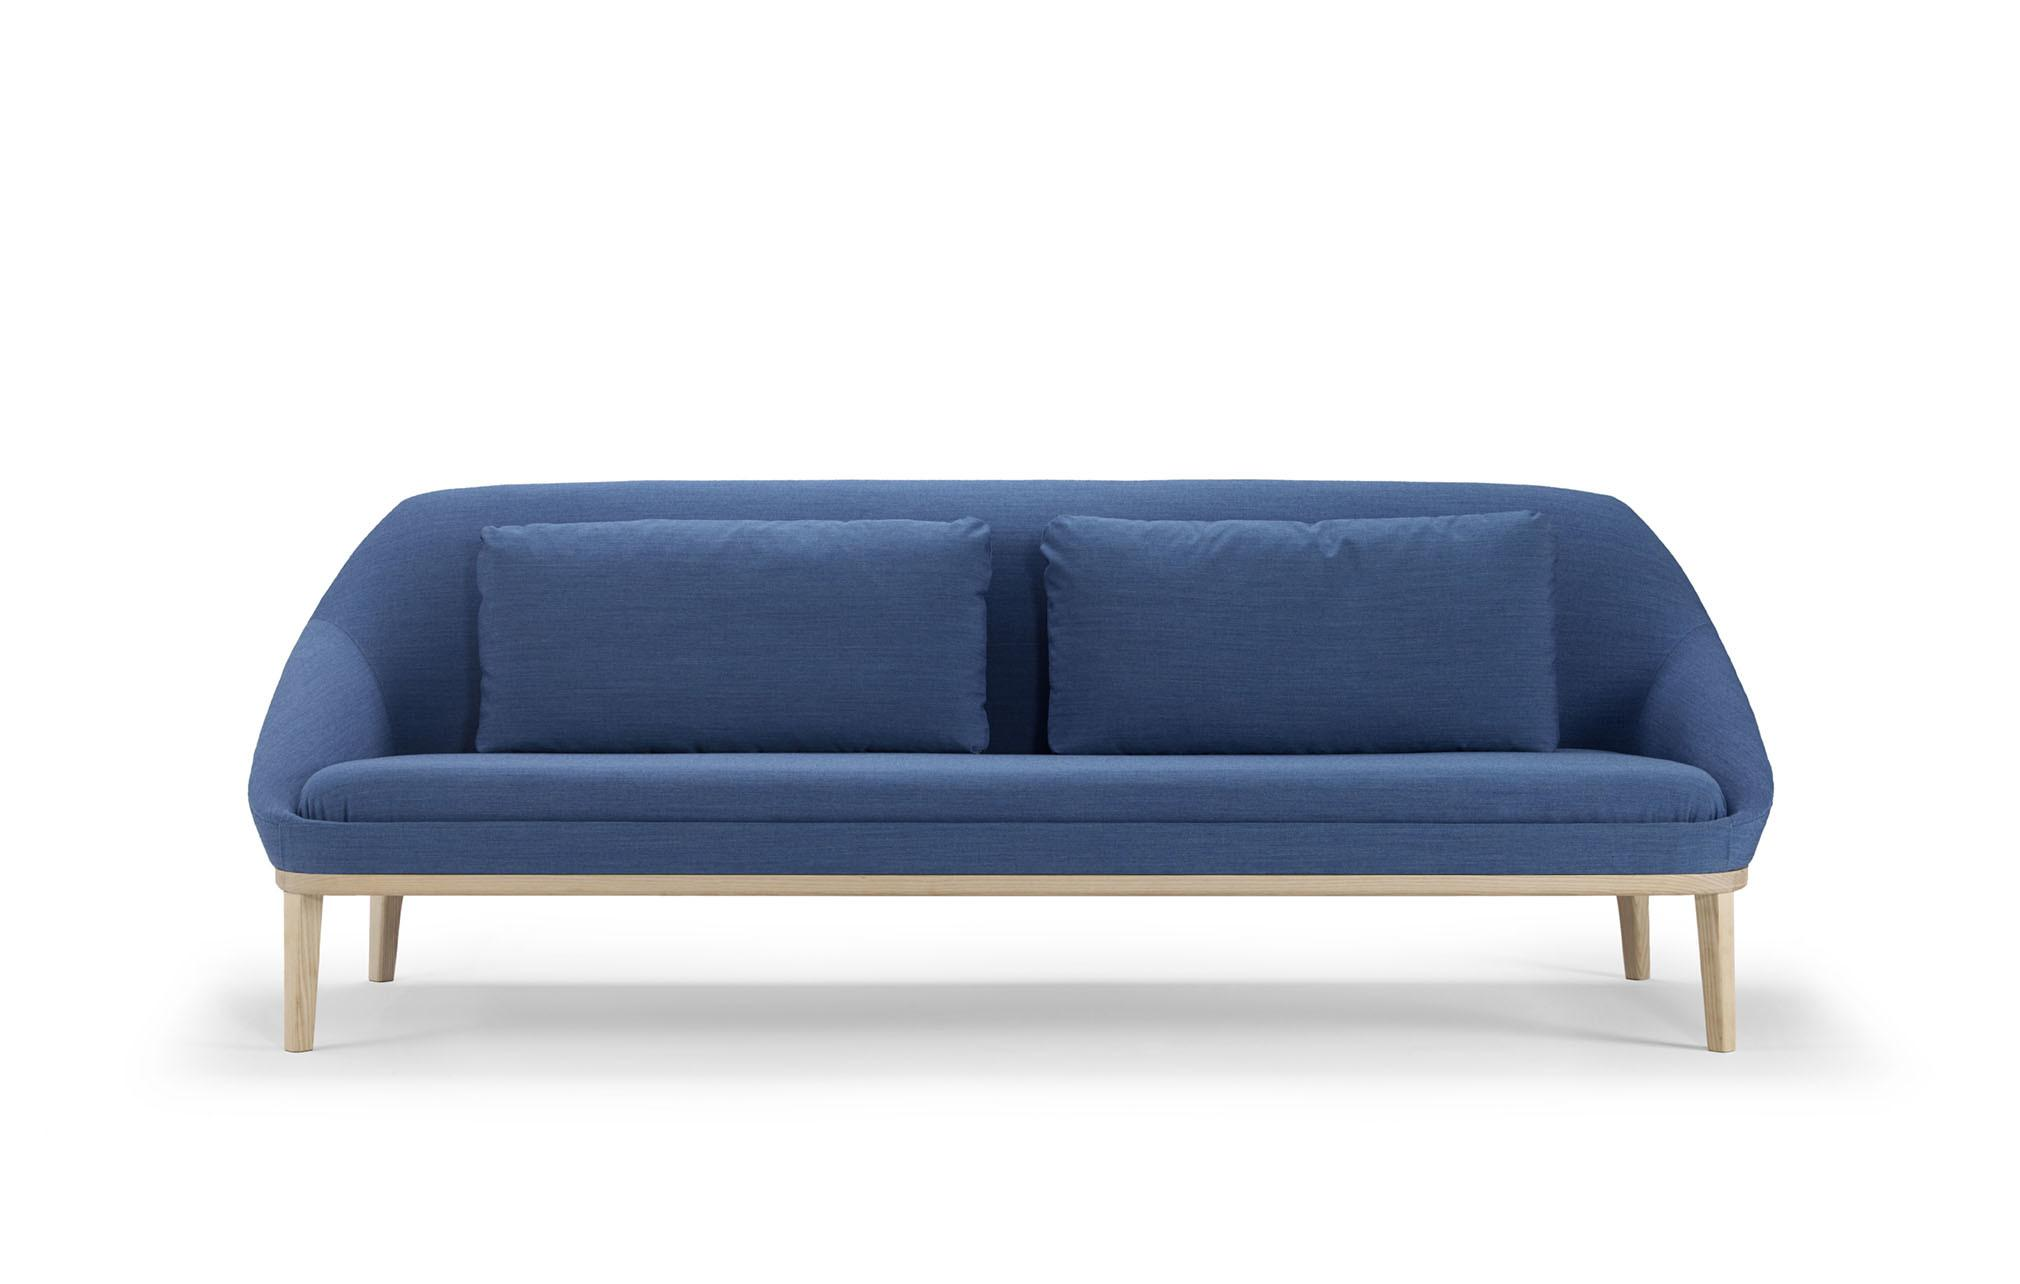 Expanded Ezy Collection Offecct Scandinavian Design